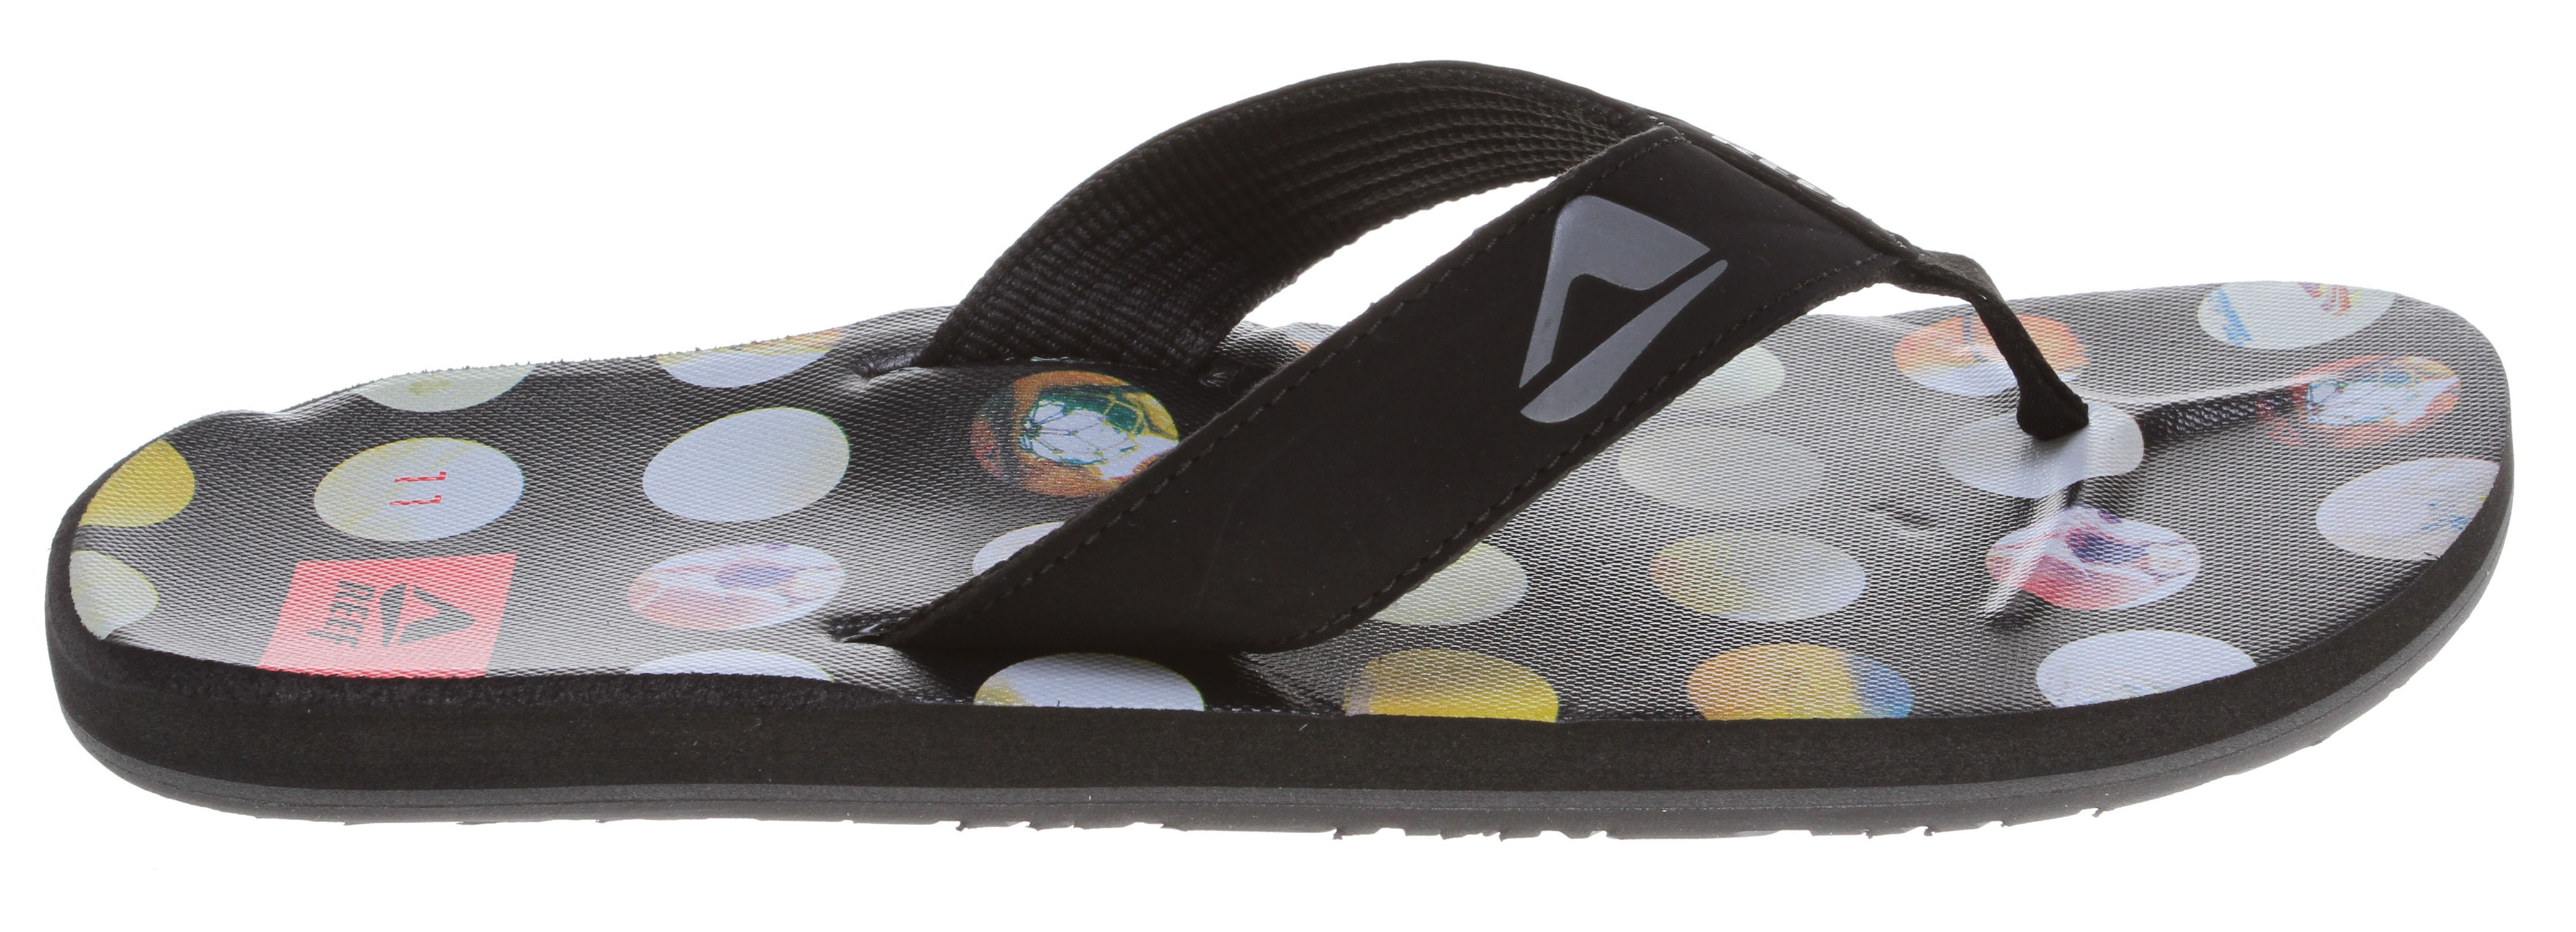 Surf Key Features of the Reef HT Prints Sandals: Guy's Essential Sandal Stylish plaid and rasta prints Soft, comfortable, water friendly synthetic nubuck upper Soft Reef polyester woven lining Non-slip toe bar feature Contoured EVA footbed with anatomical arch support Grippy molded Reef rubber outsole - $19.95